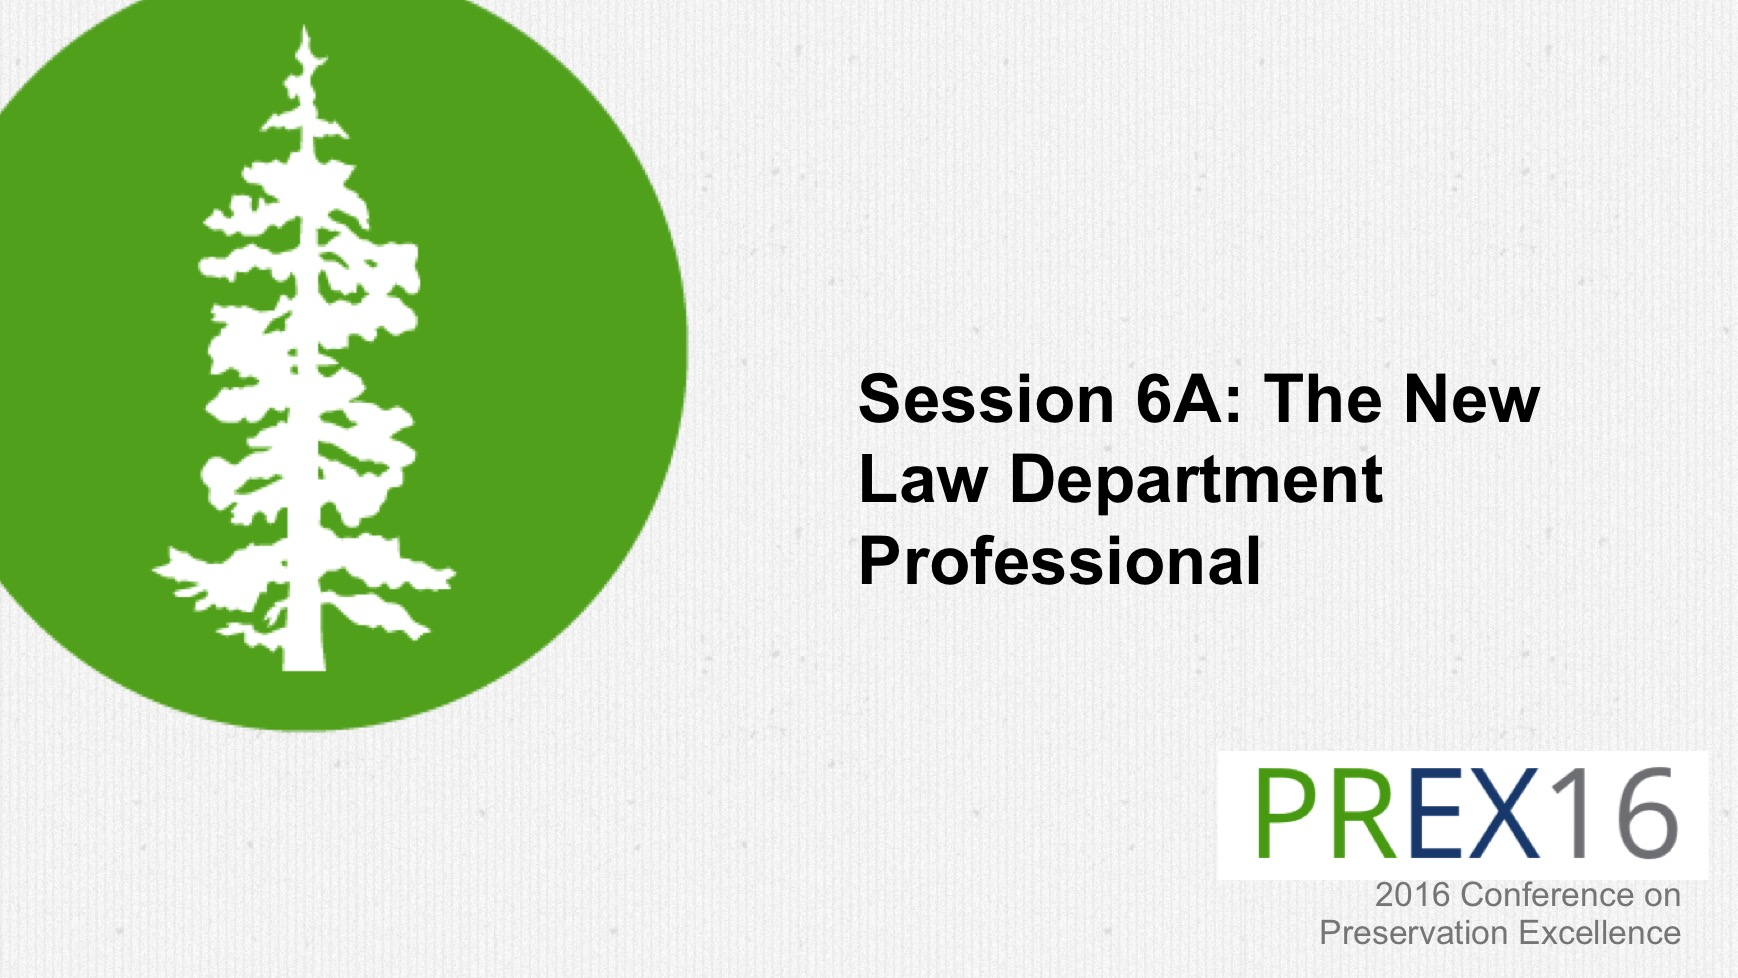 The New Law Department Professional